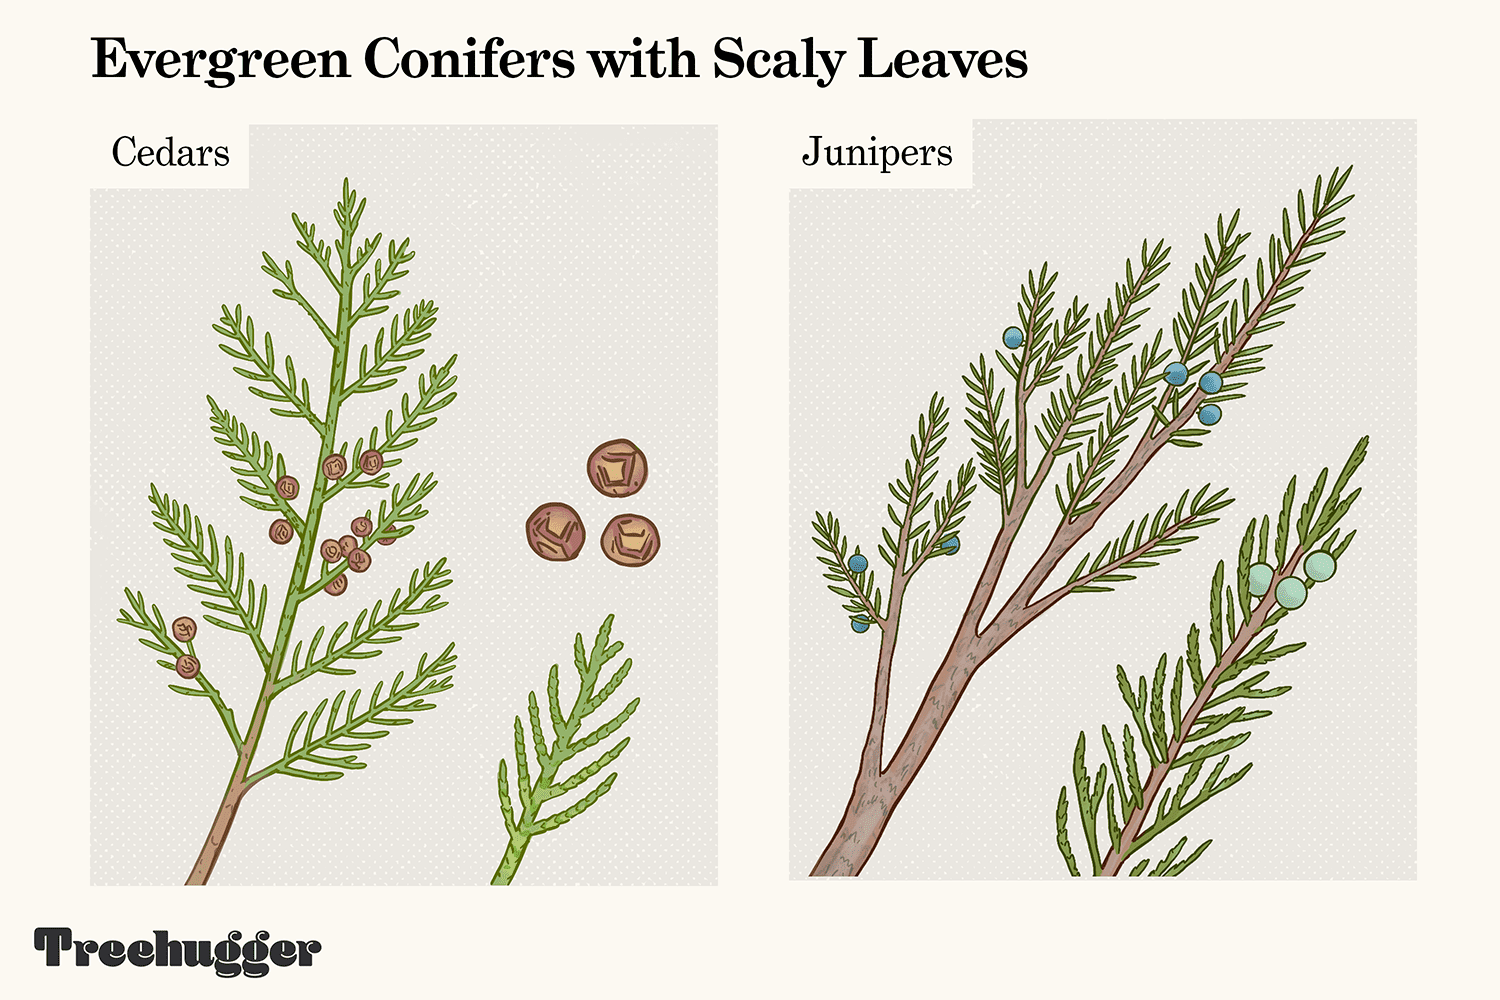 evergreen conifer trees with scaly leaves identification illustration